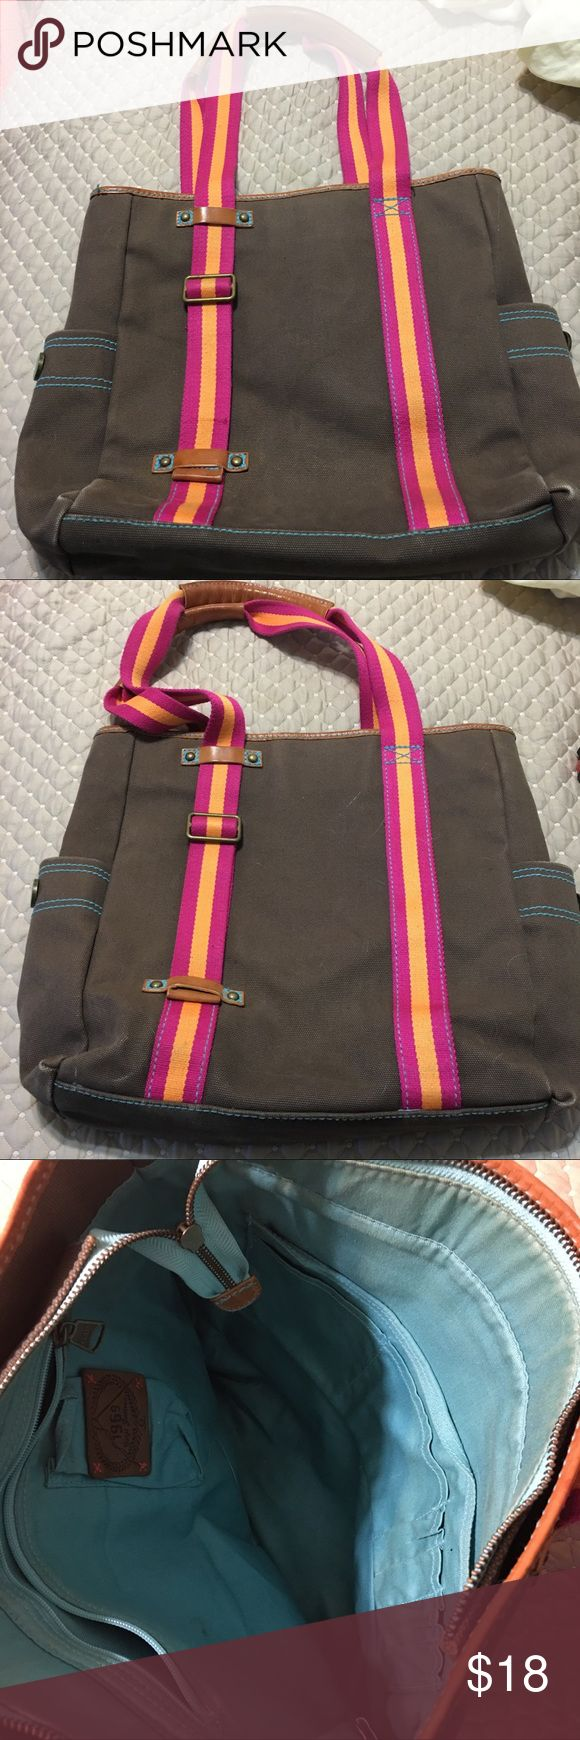 """Gap Tote A large Gap Tote Material: Canvas with Leather Accents  Size: Large 2 side pockets  Bag zips closed Inside: 1 zip pocket, 1 medium slip pocket, 4 pen pockets 2 small slip pockets  Color: Brown with pink/orange straps and brown leather accents L 14"""" x W 13.5"""" x D 3"""" Drop 10"""" GAP Bags Totes"""